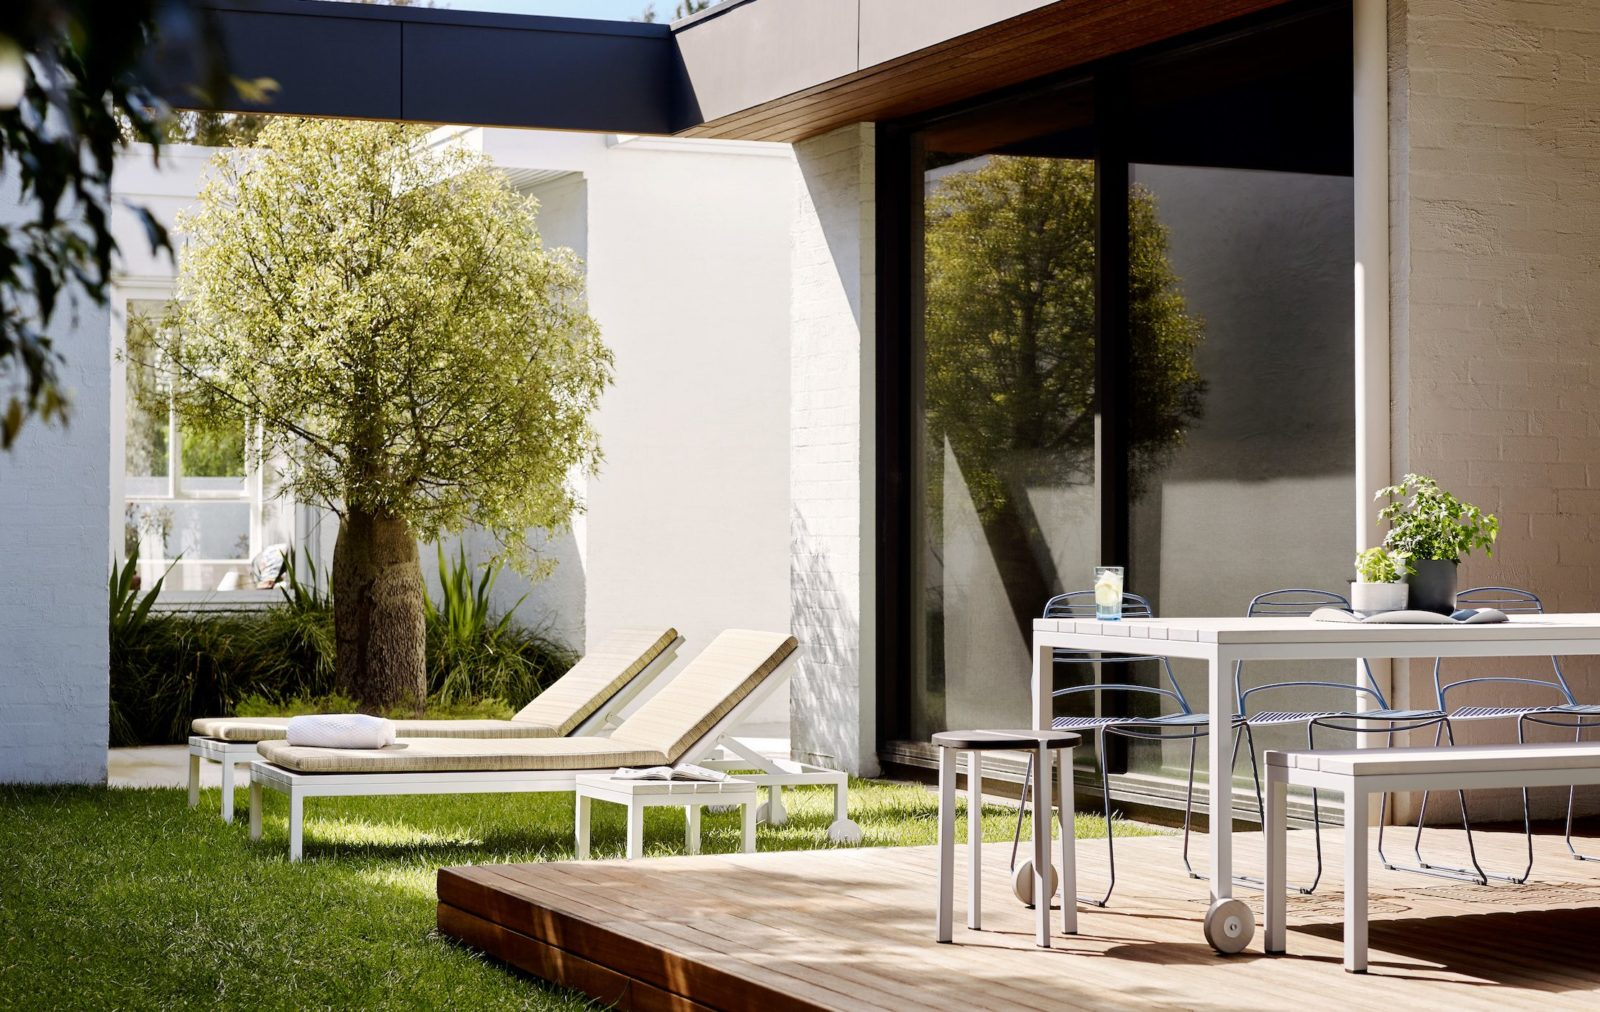 The Linear Sunlounge is a luxury modern outdoor sunlounge. Outwardly unassuming, look closer to see why Linear has become a Tait classic.